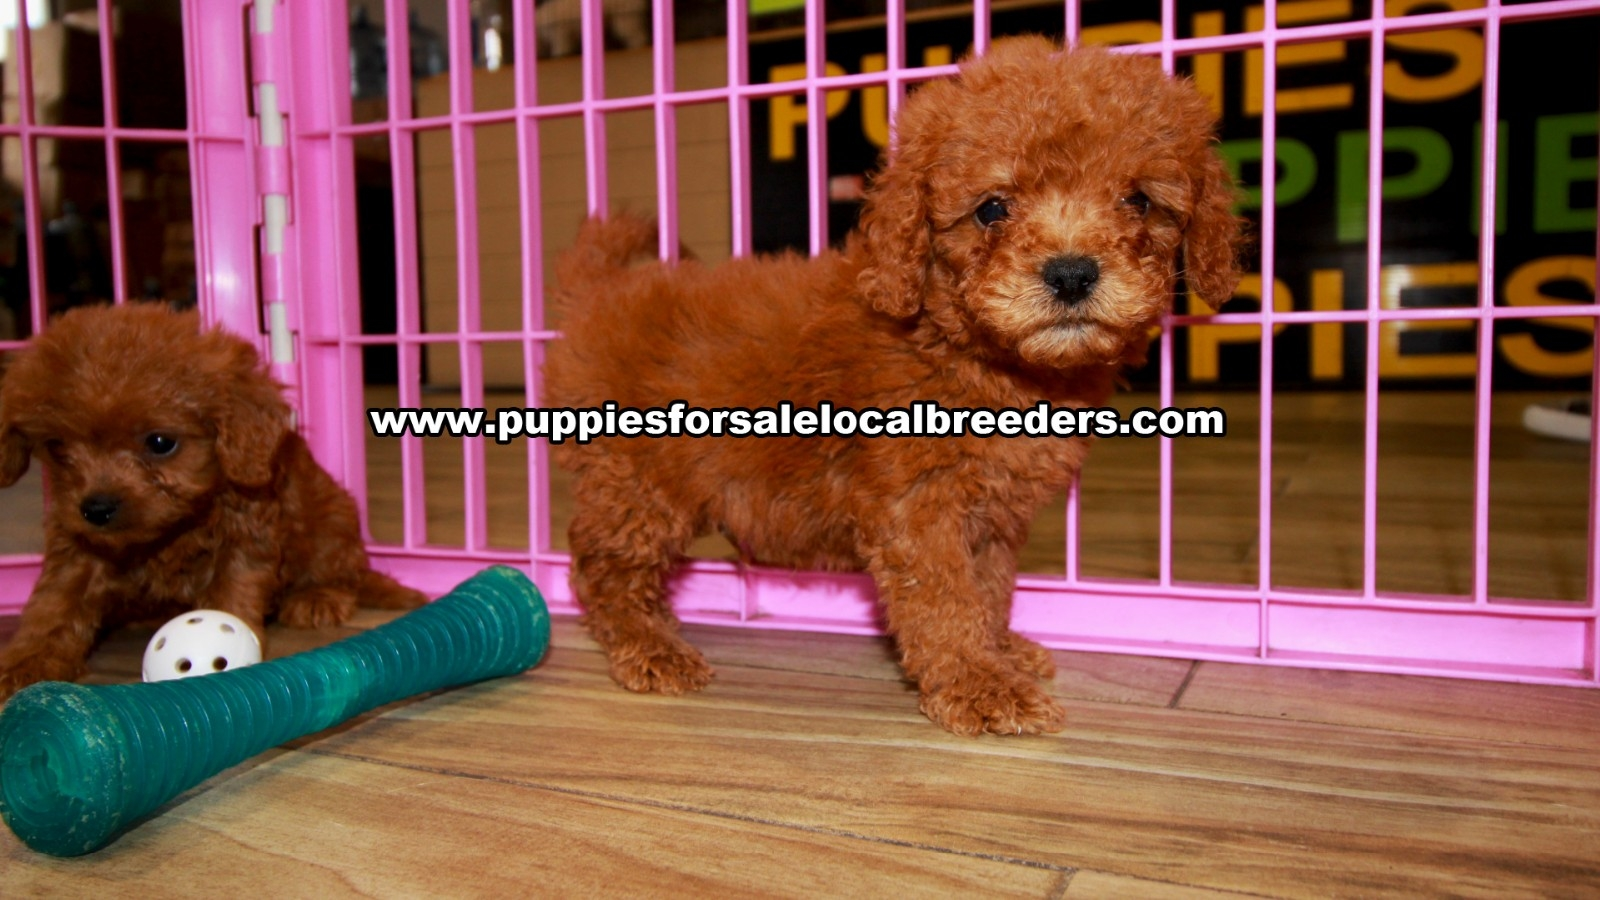 Red Cavapoo, Puppies For Sale In Georgia, Local Breeders, Near Atlanta, Ga